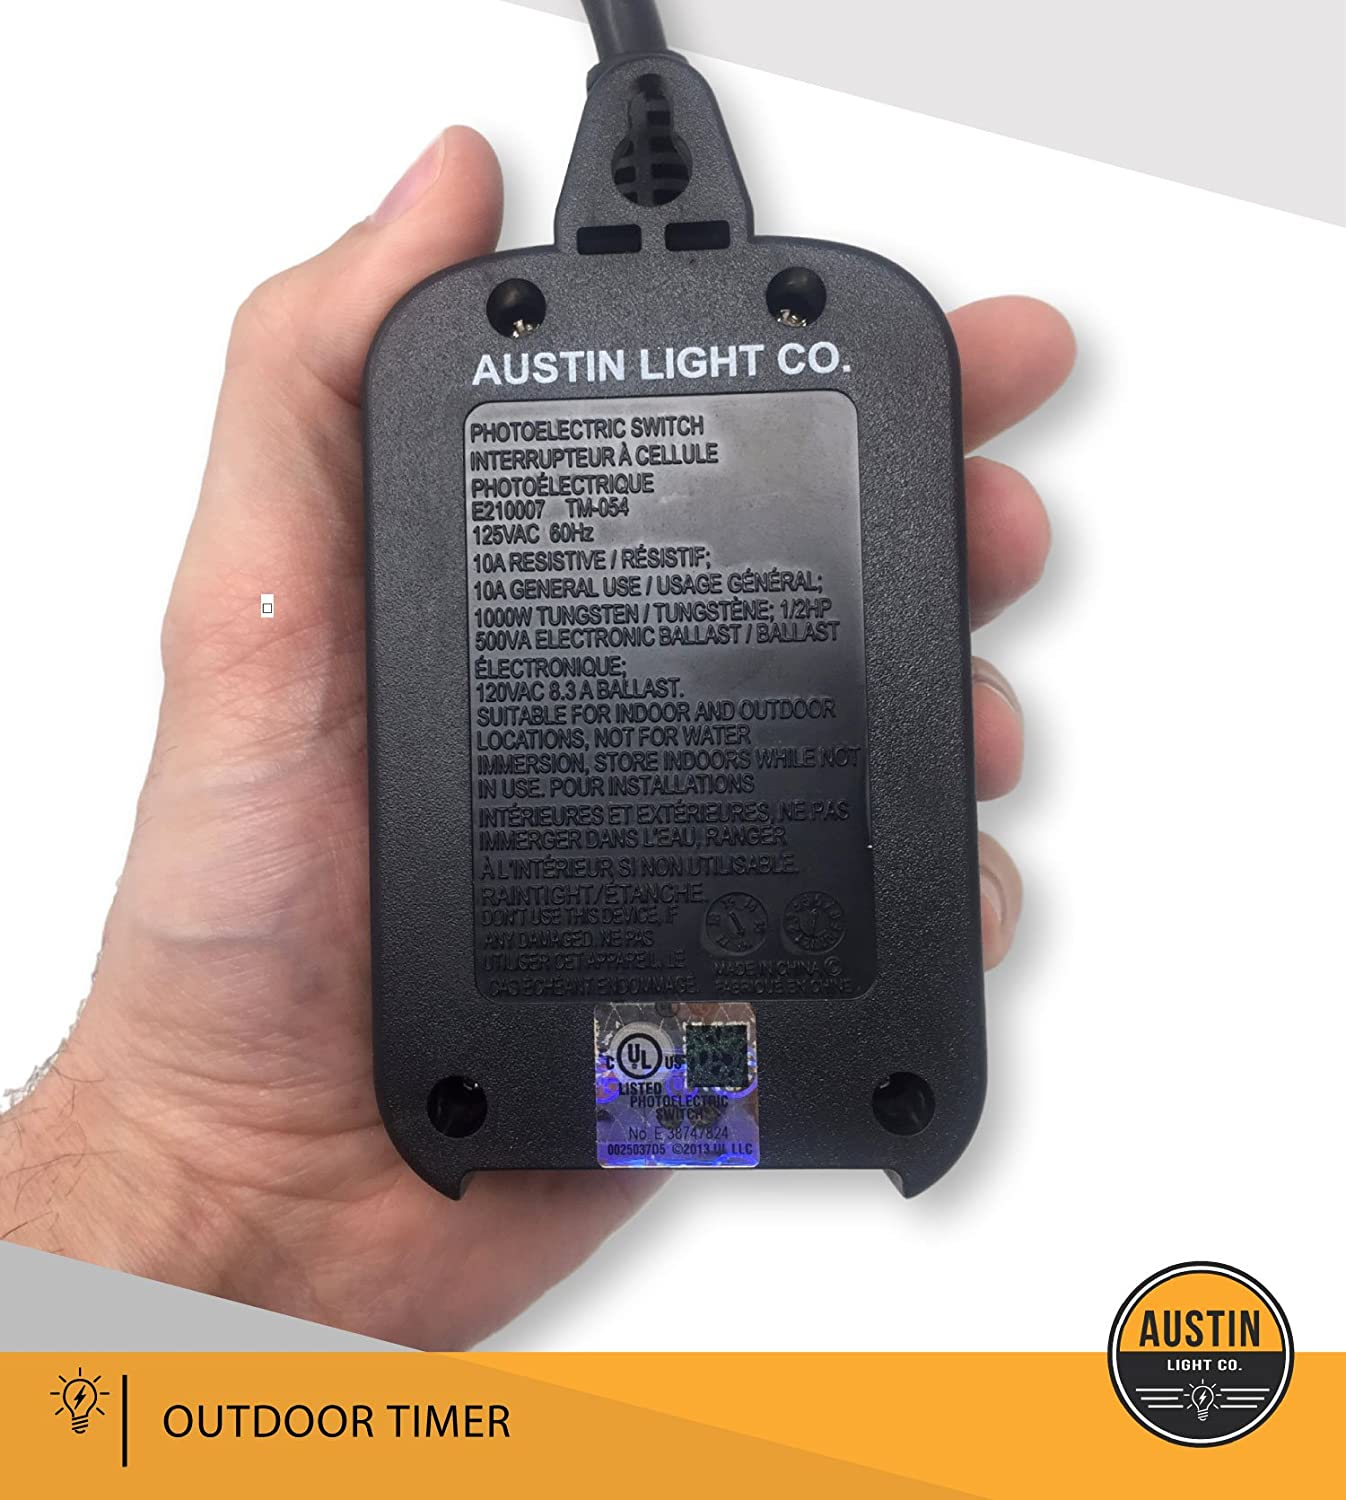 Austin Light Co 1 Socket Outdoor Outlet Timer With Photocell Switch Electronic Design Sensor Weatherproof Black Ul Listed Commercial Grade Great For Christmas Holiday Lights Patio